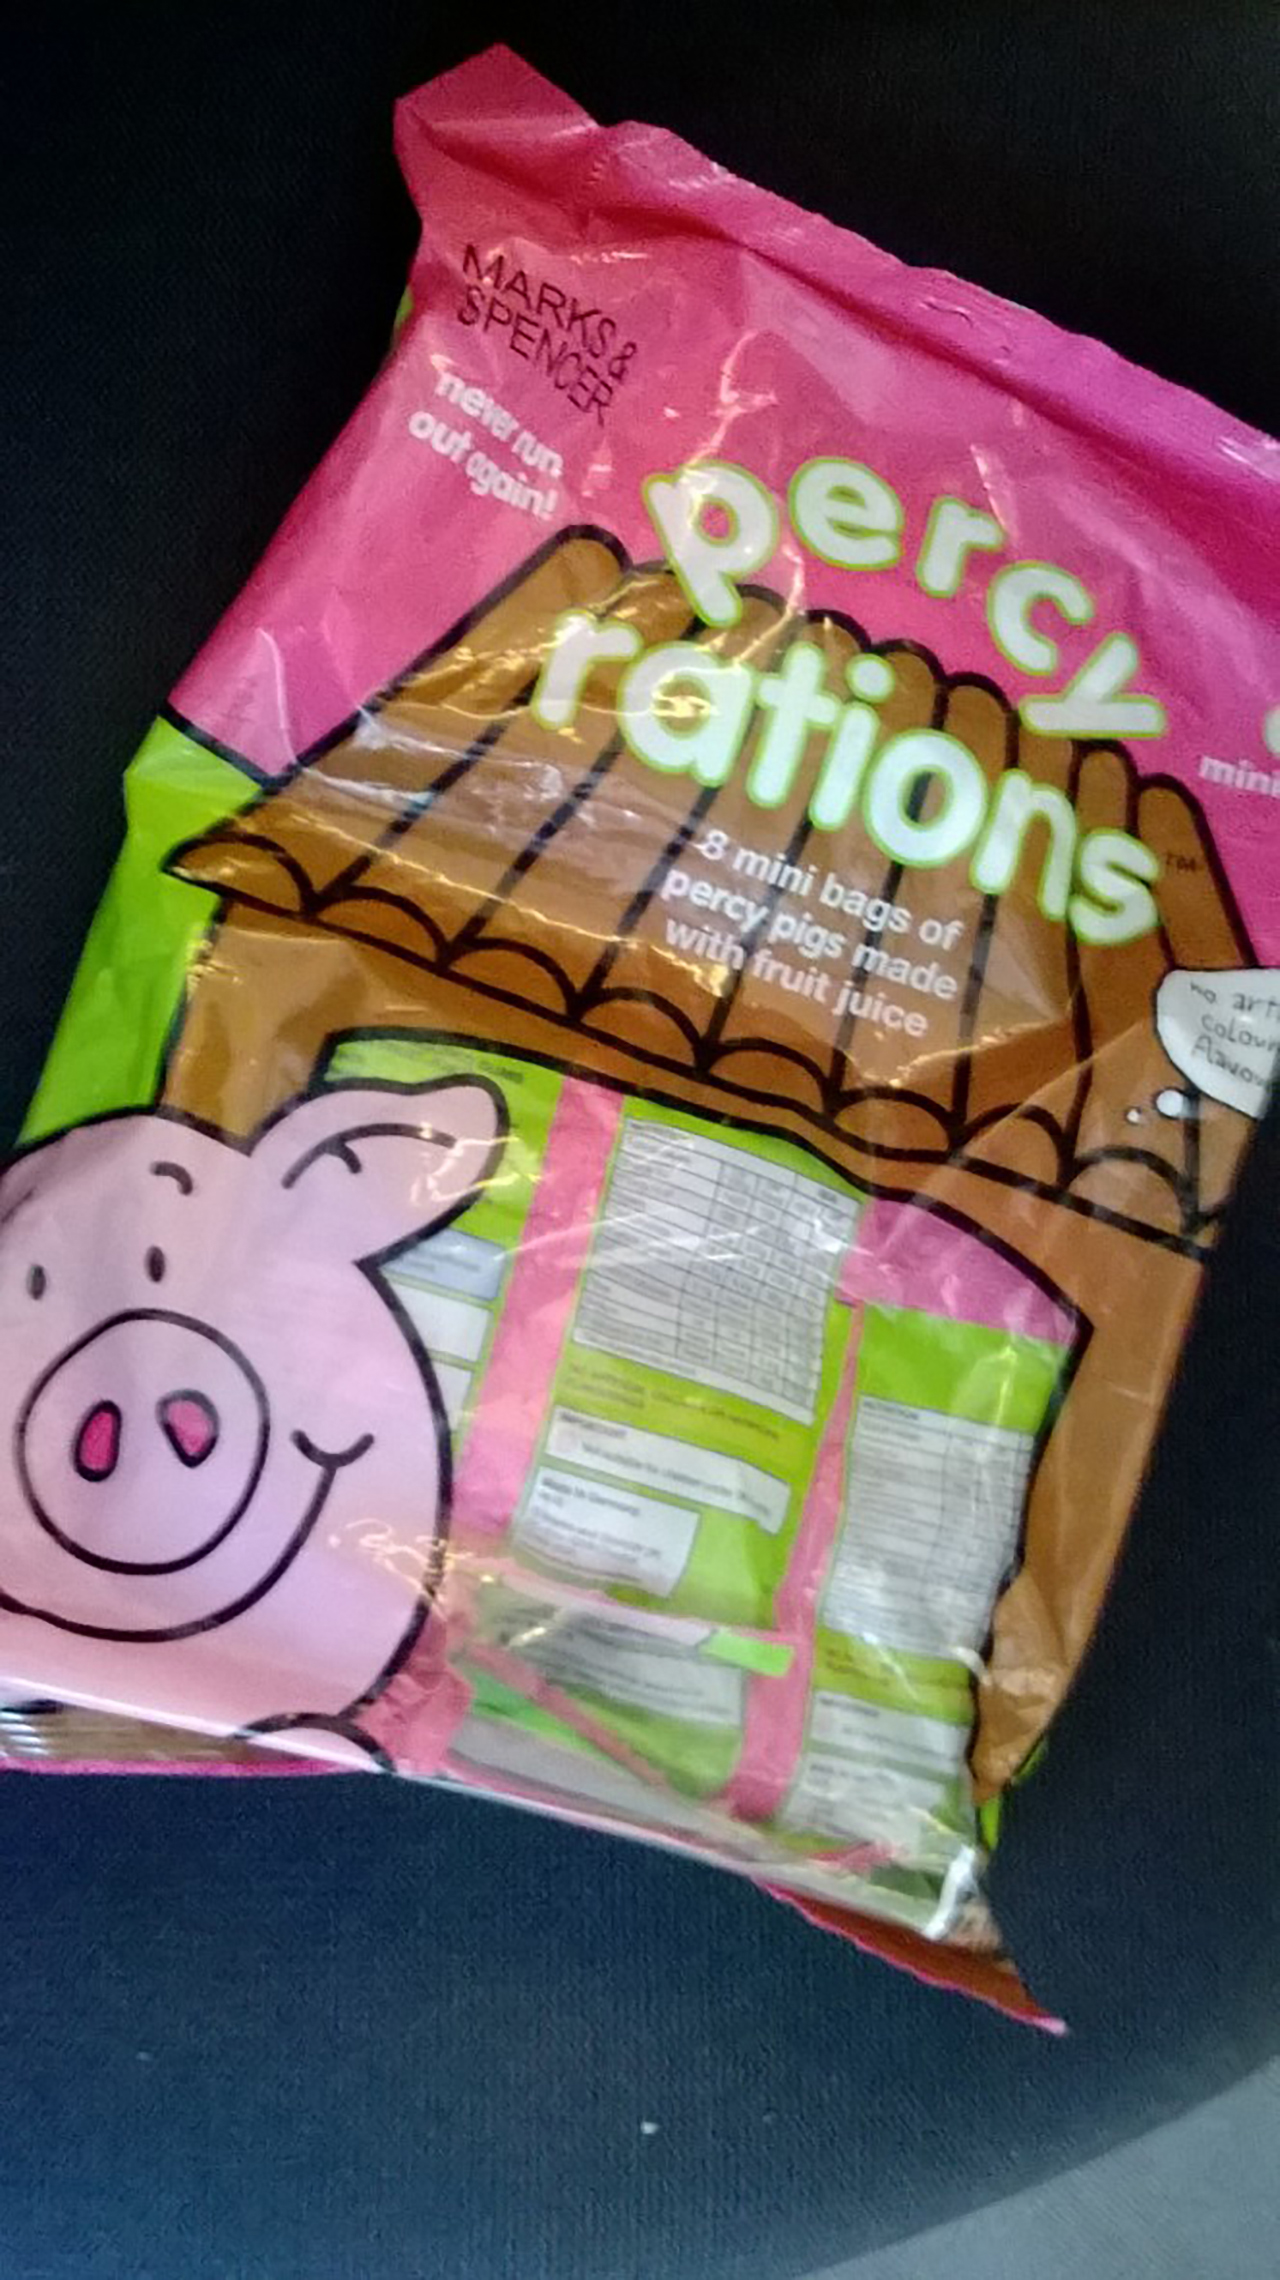 If you send them, we will share the chewy Percy Pig large bag of rations from Marks & Spencer. (BB)